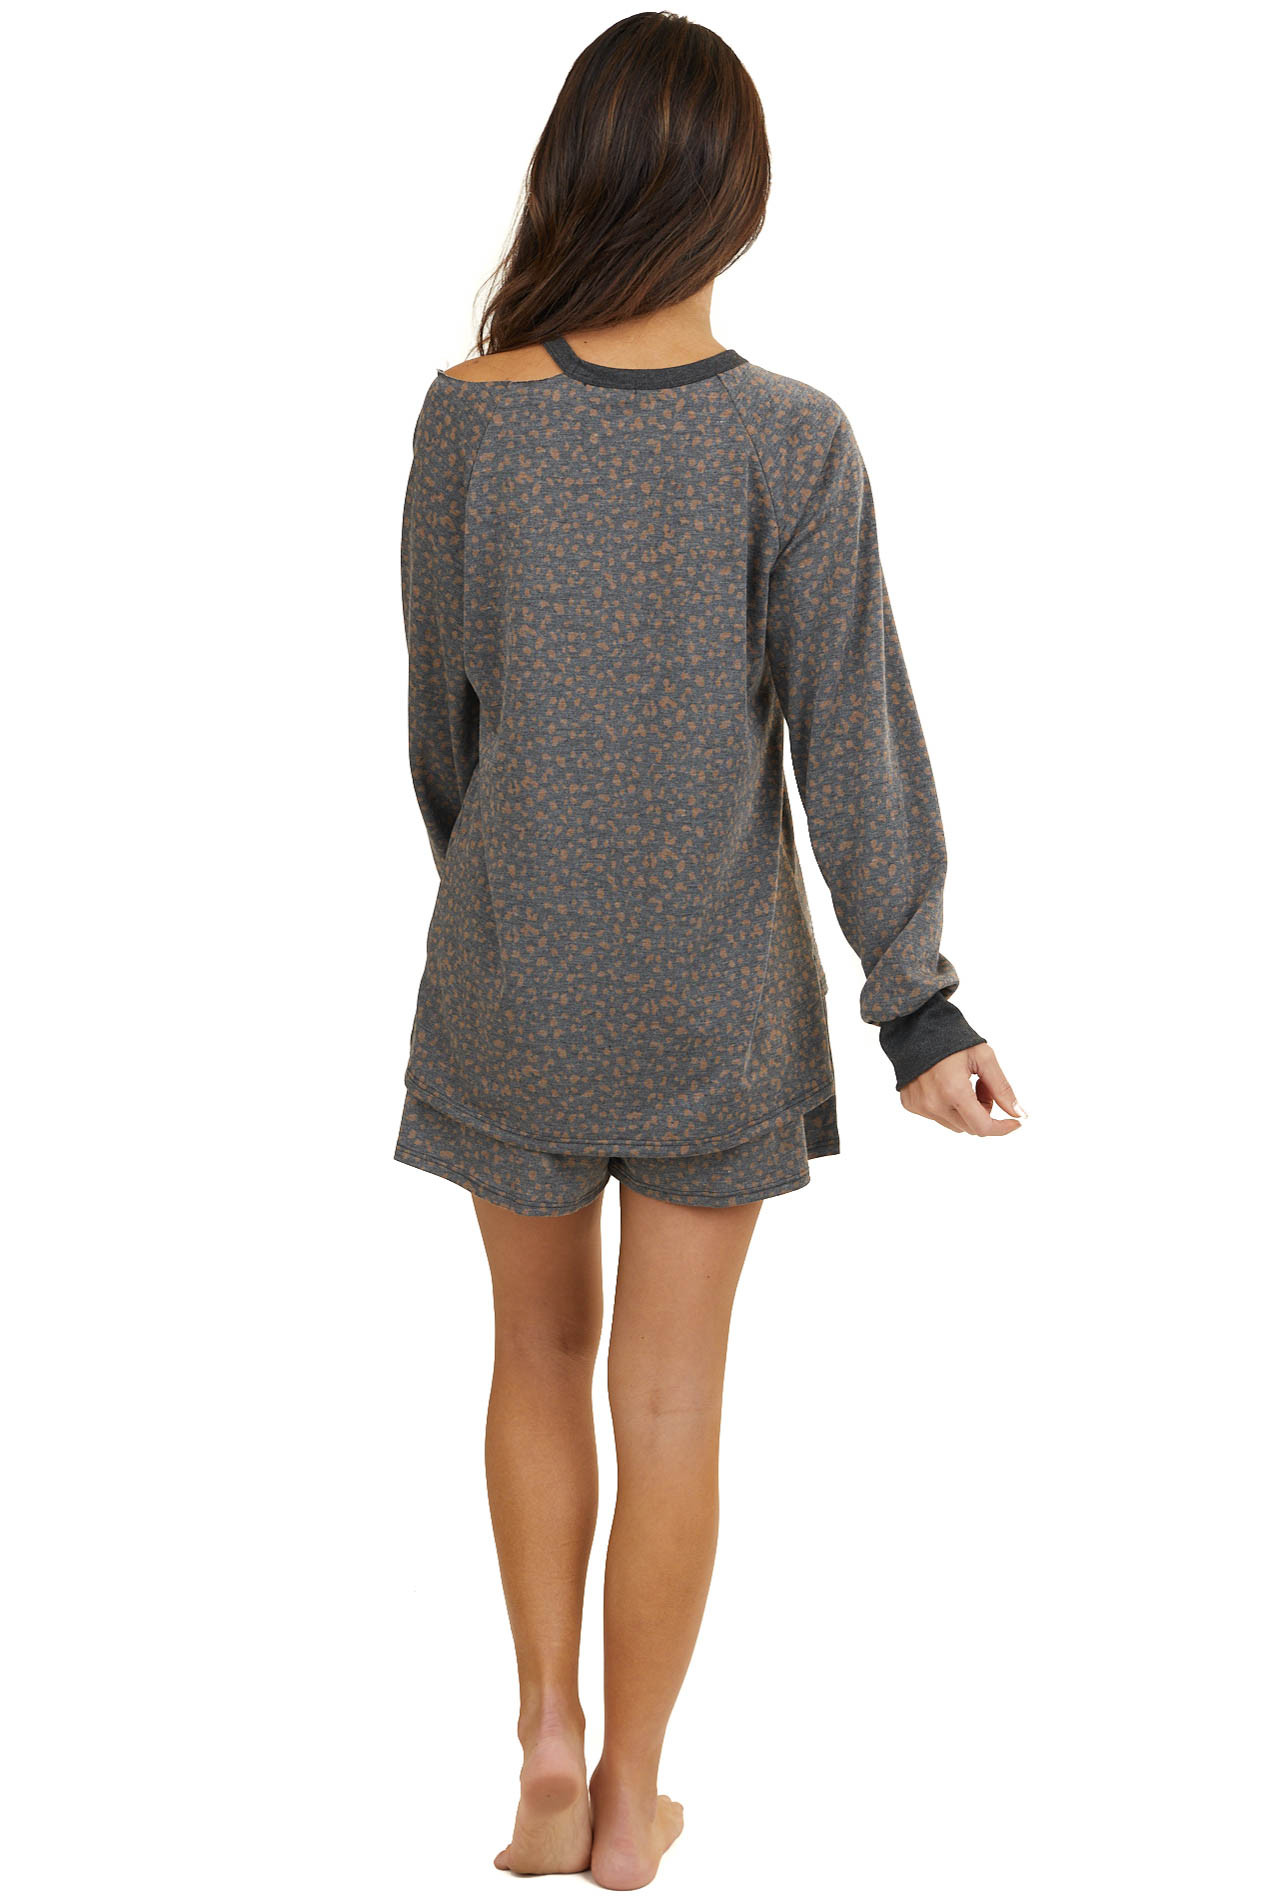 Stormy Grey Cheetah Print Long Sleeve Top with Cold Shoulder